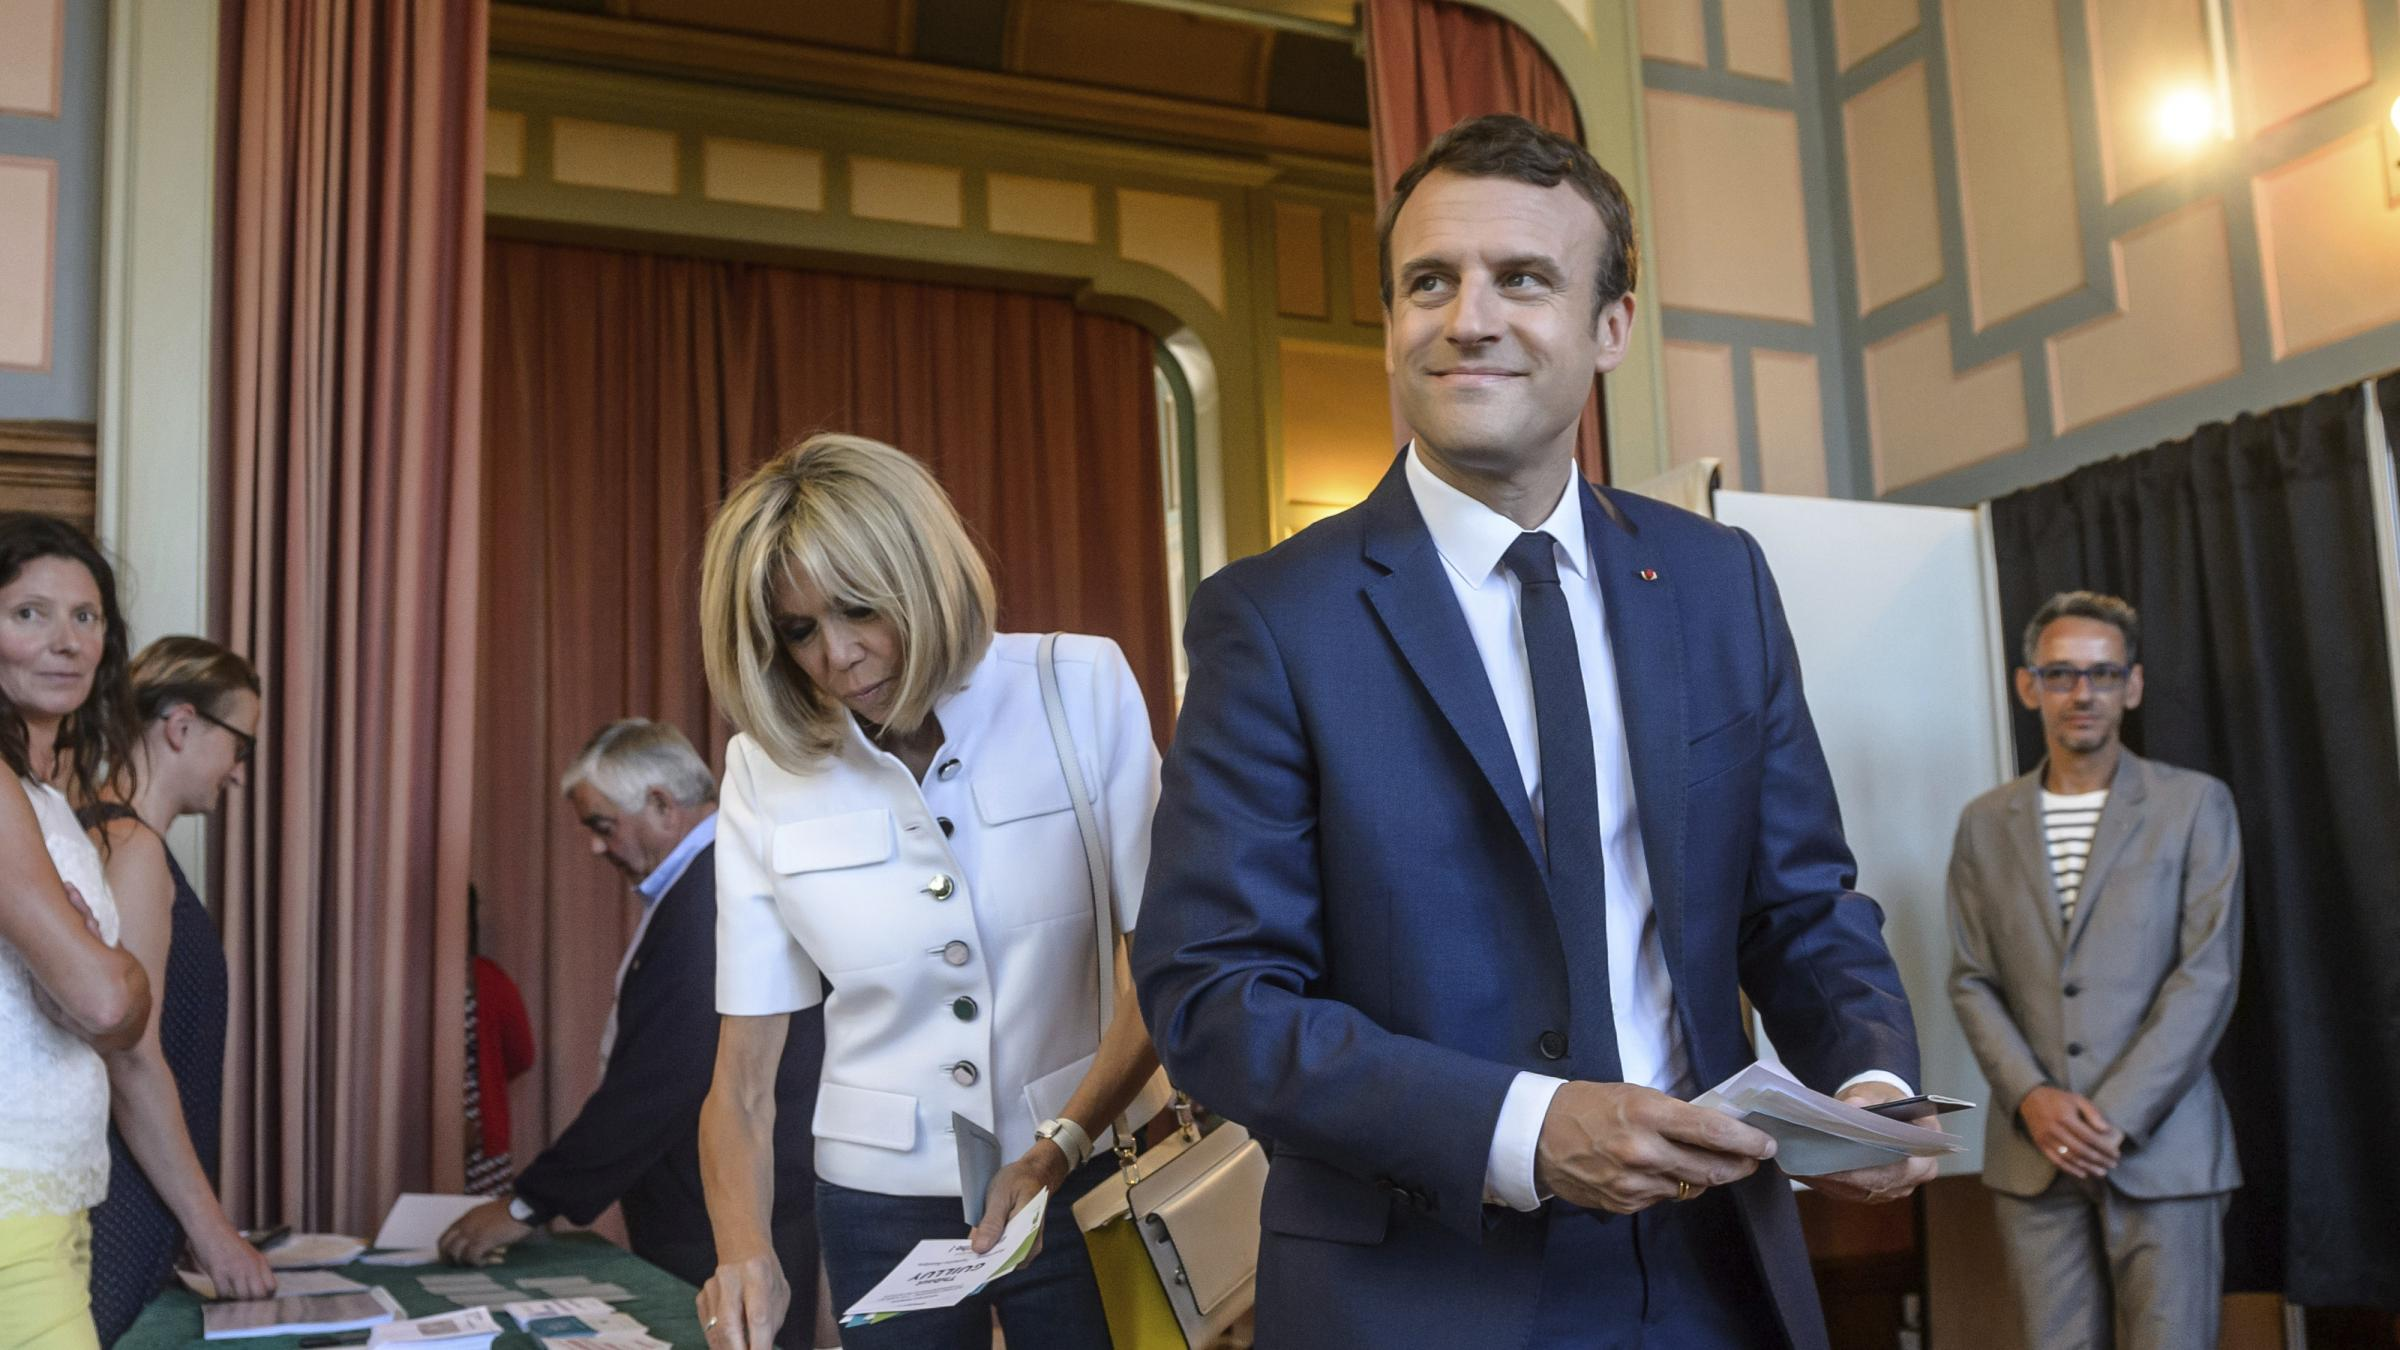 French President Macron Wins Big in Parliamentary Vote